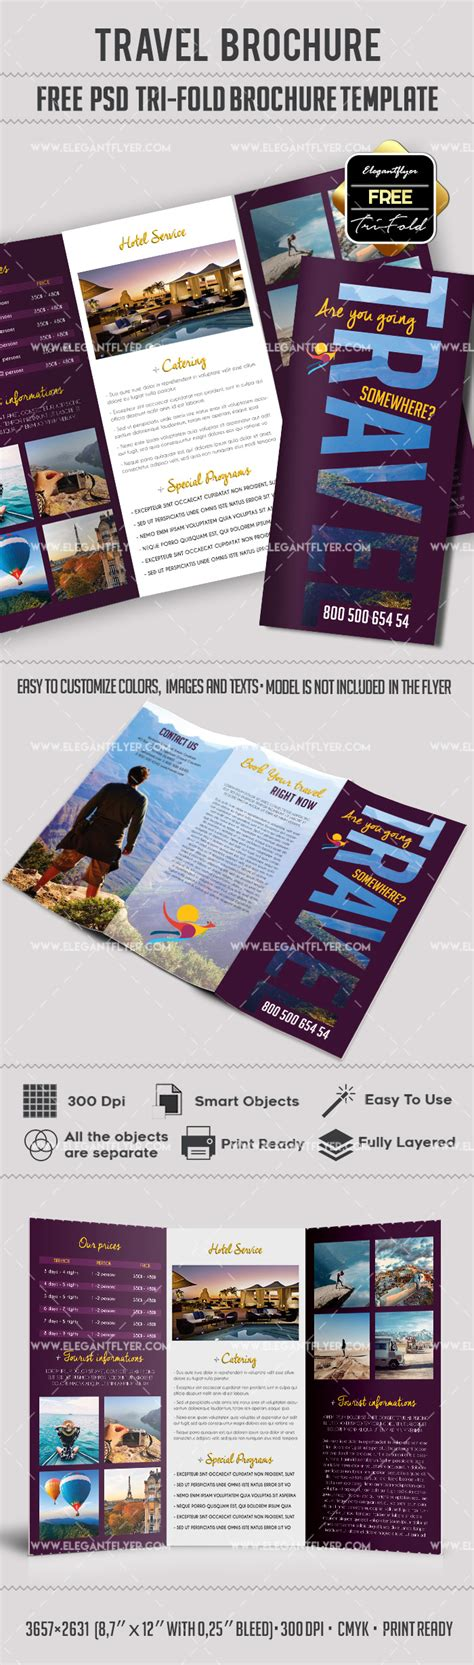 Tri Fold Brochure Templates Free By Elegantflyer Tri Fold Travel Brochure Template By Elegantflyer